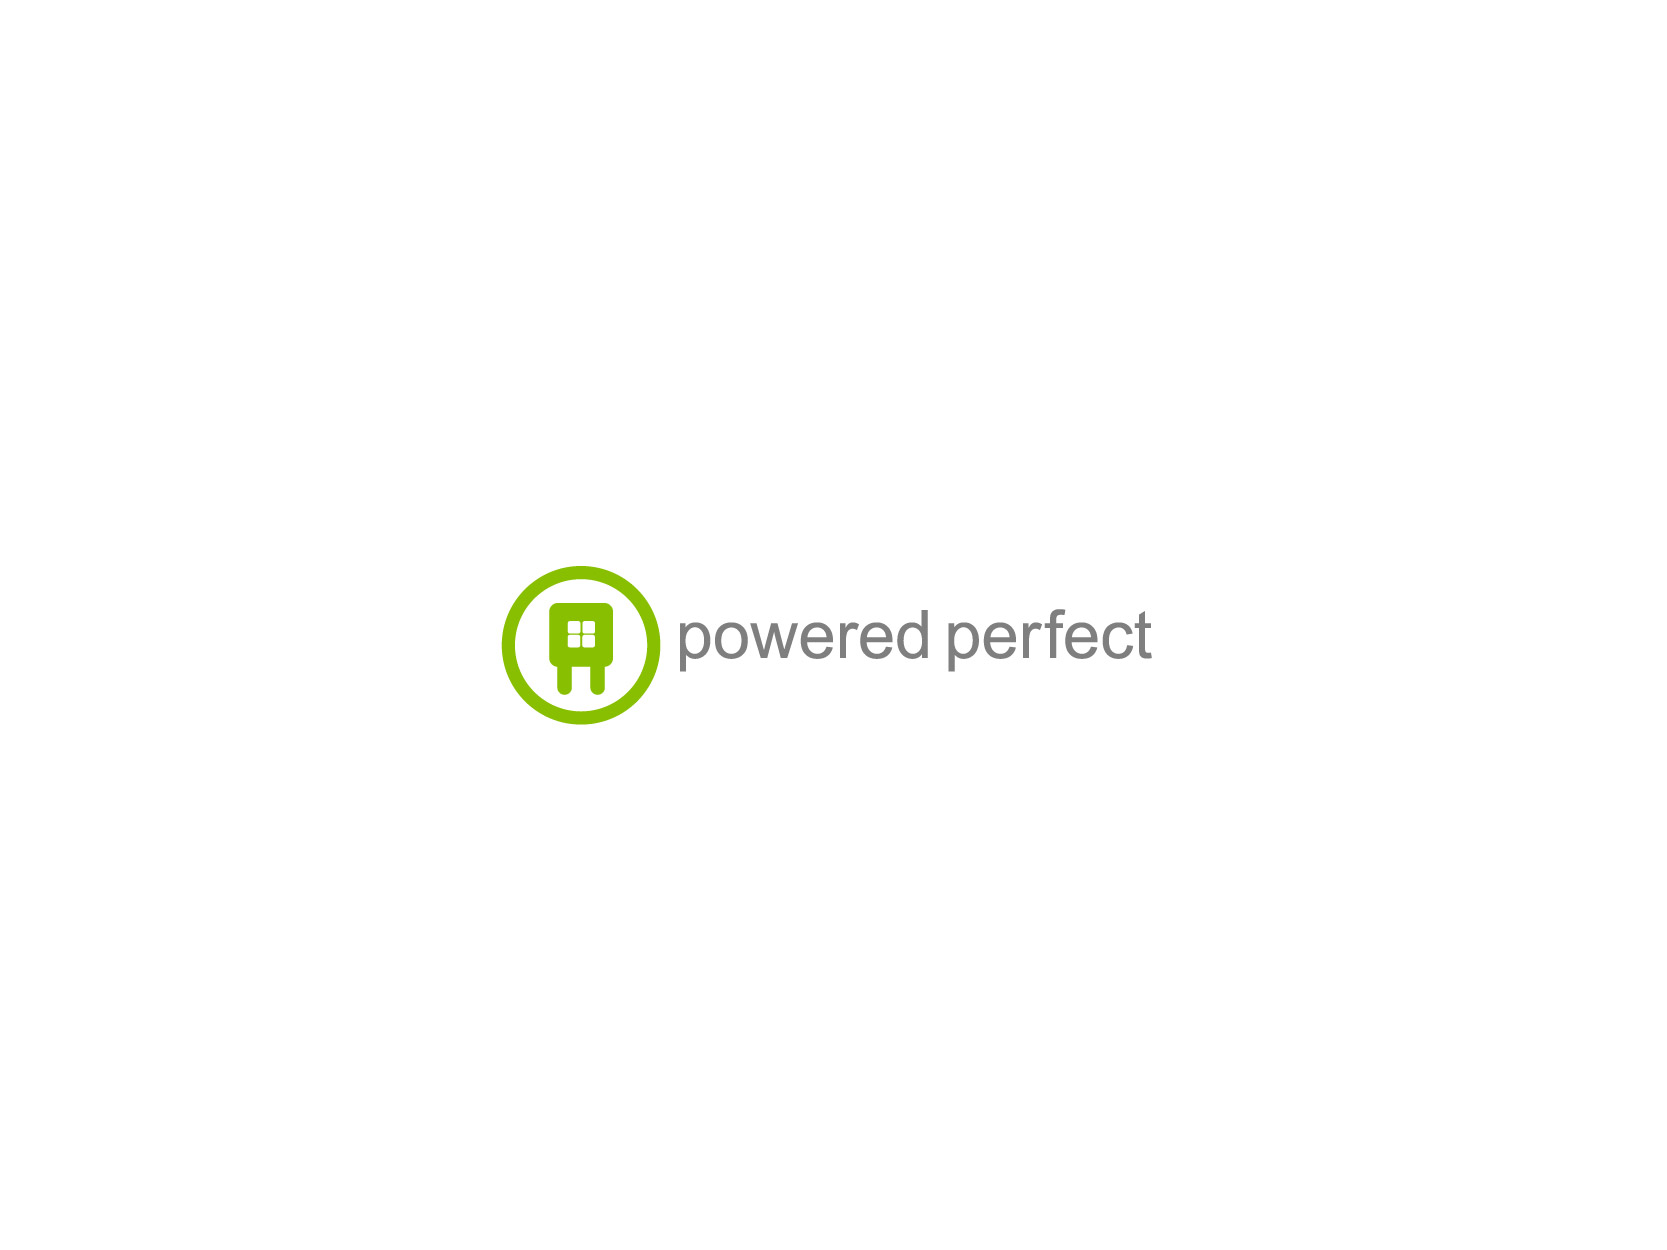 Logo Design by Osi Indra - Entry No. 9 in the Logo Design Contest Captivating Logo Design for Powered Perfect.